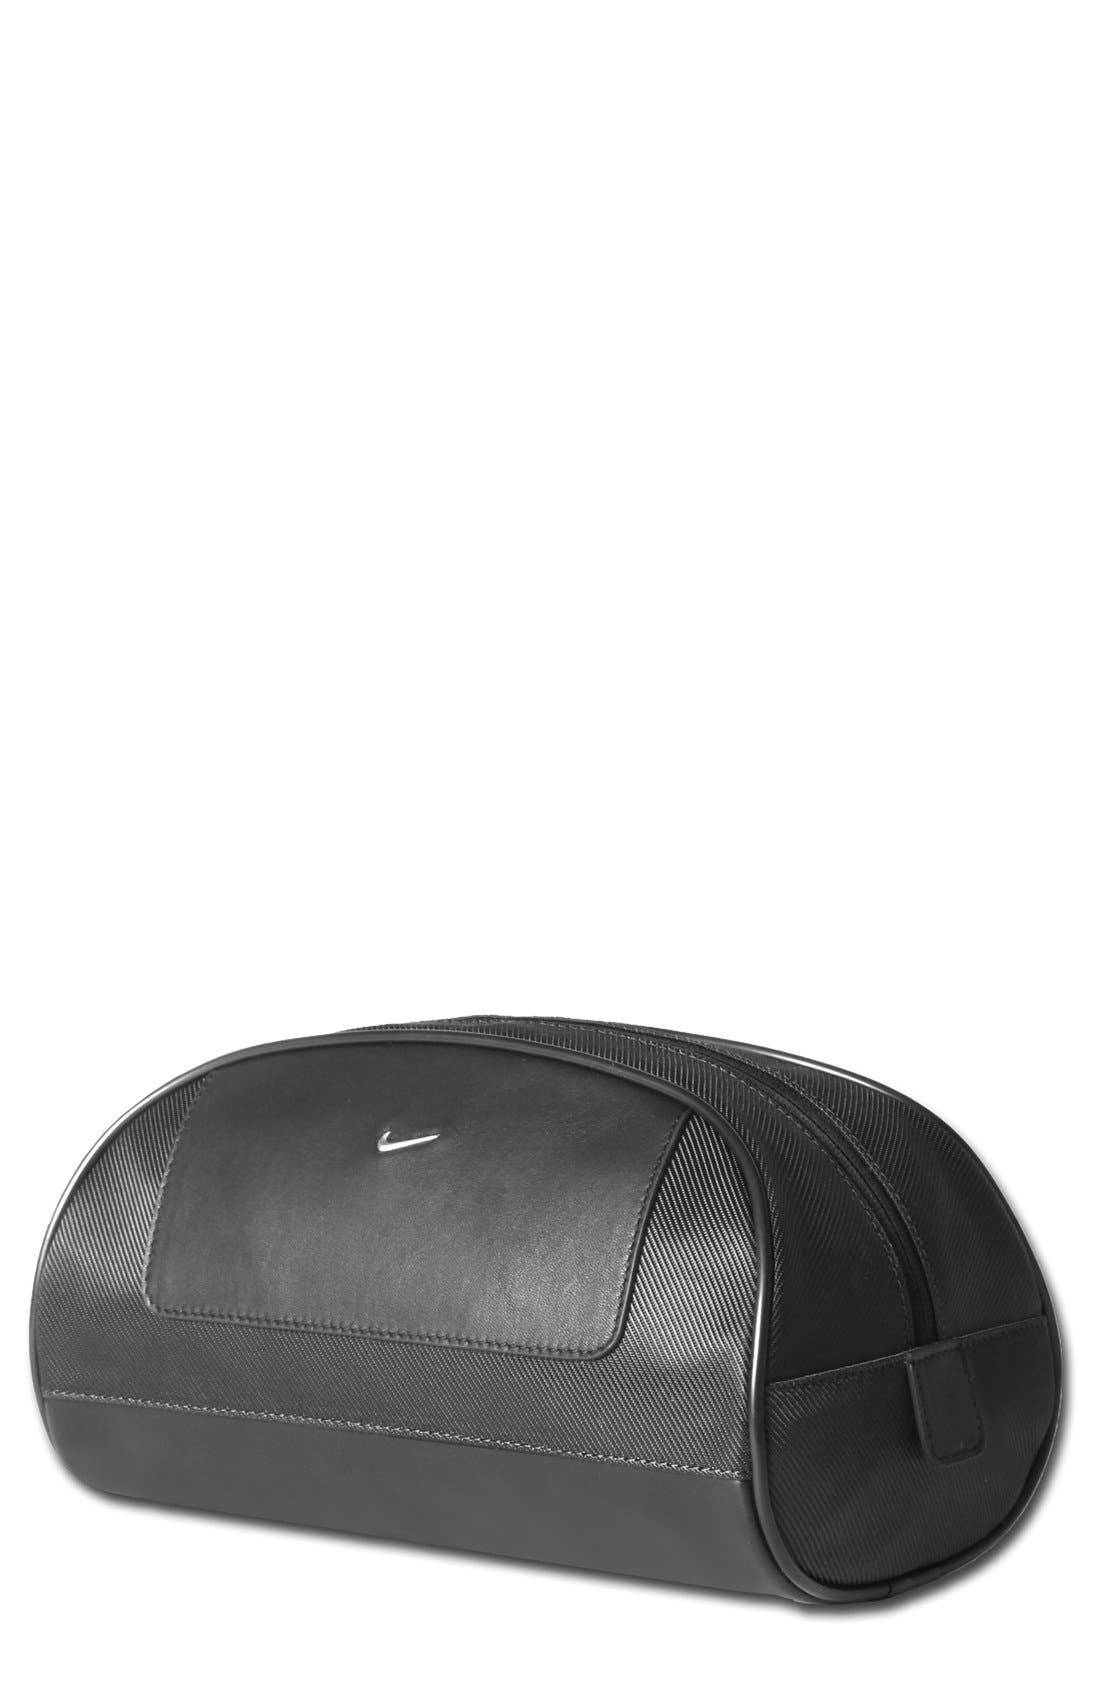 Nike Leather Travel Kit